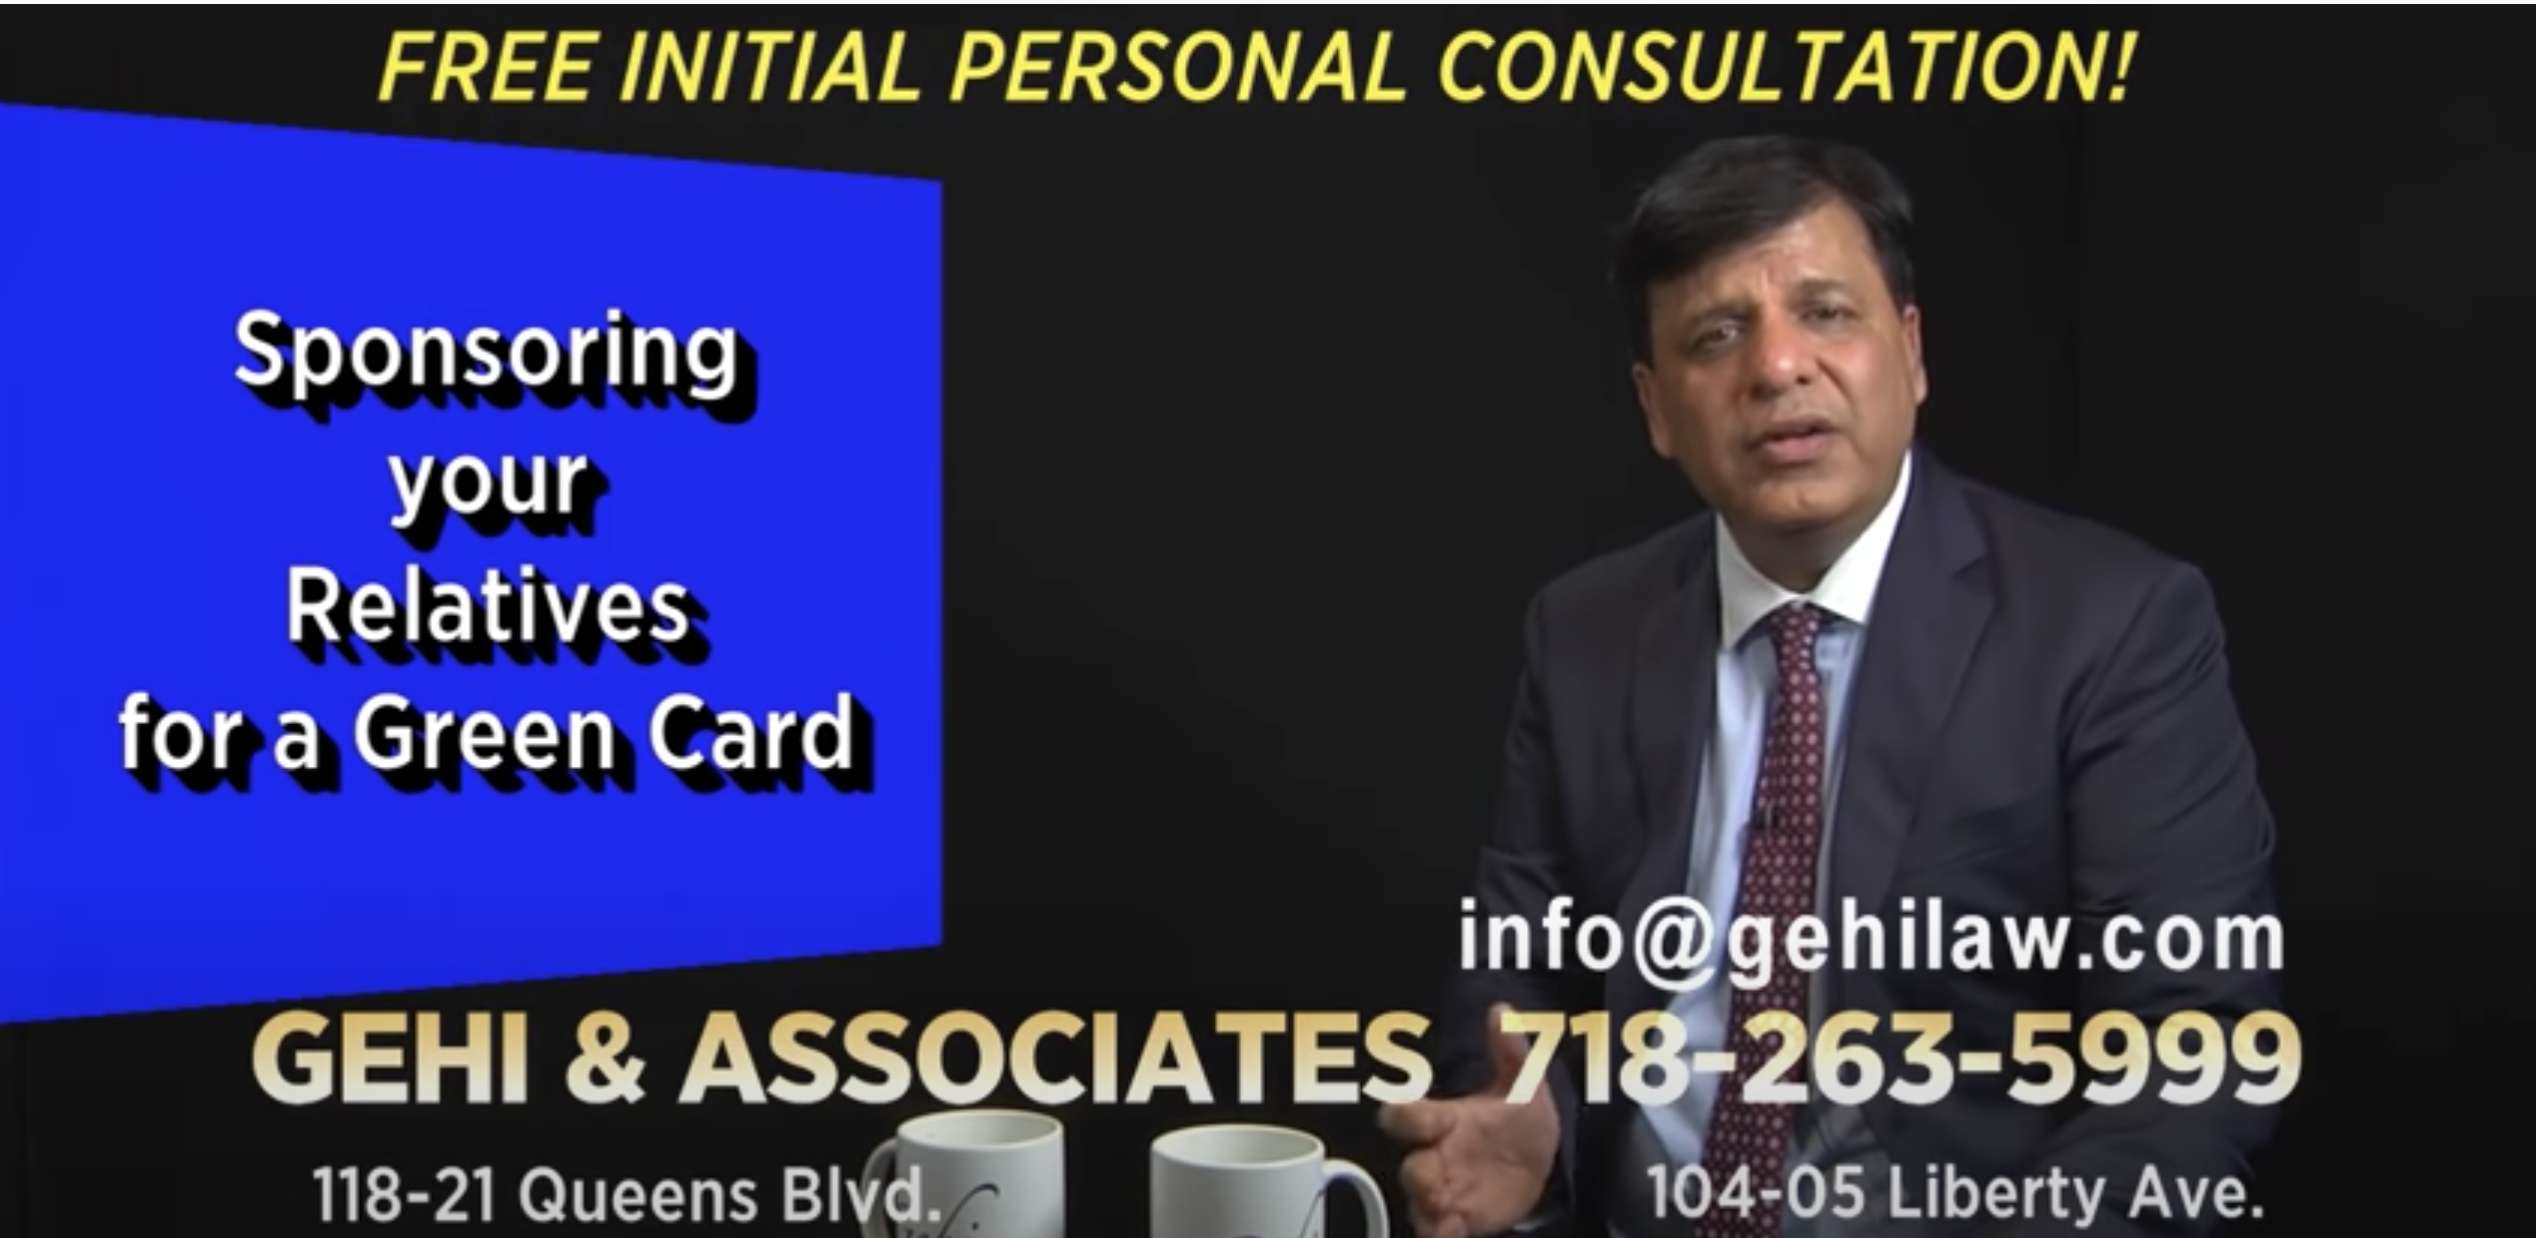 Sponsoring your relatives for a Green card – NYC Immigration lawyer